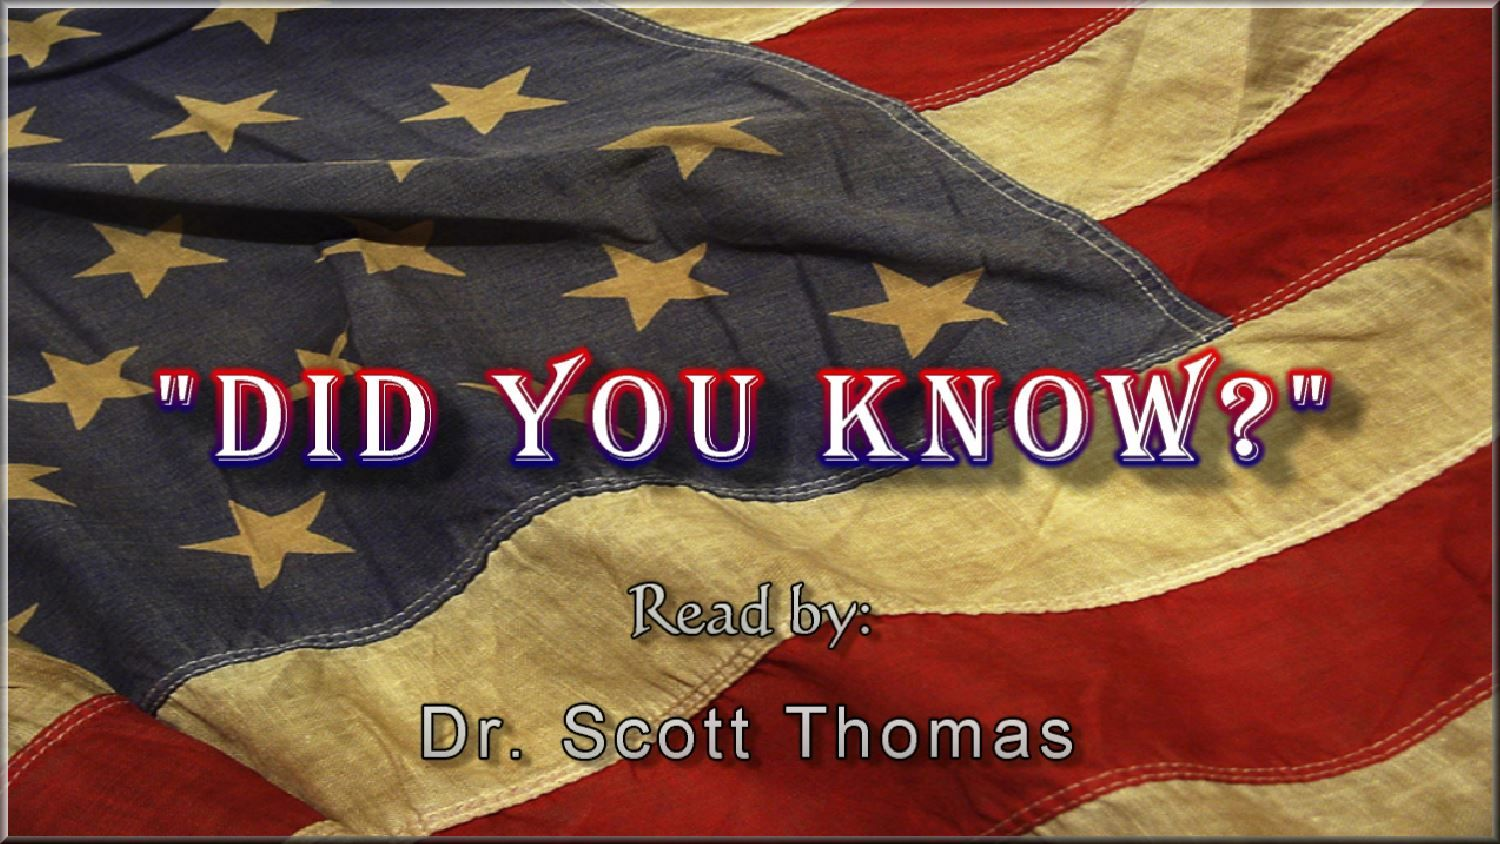 Dr. Scott A. Thomas message